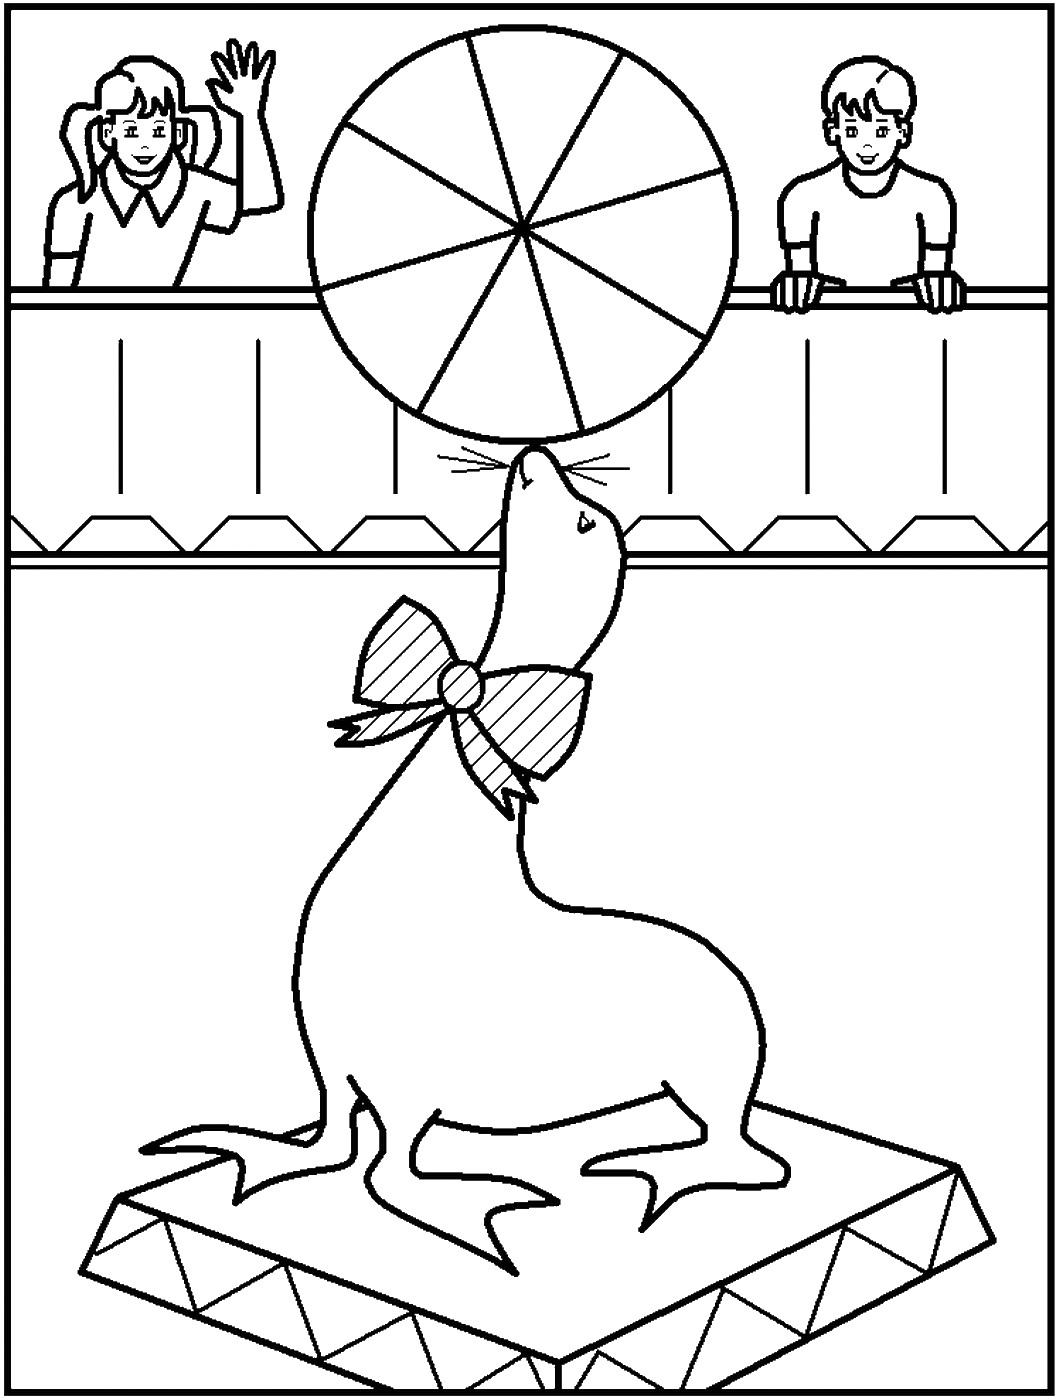 carnival clown coloring pages circus clown face coloring page coloring sheets clown pages coloring carnival